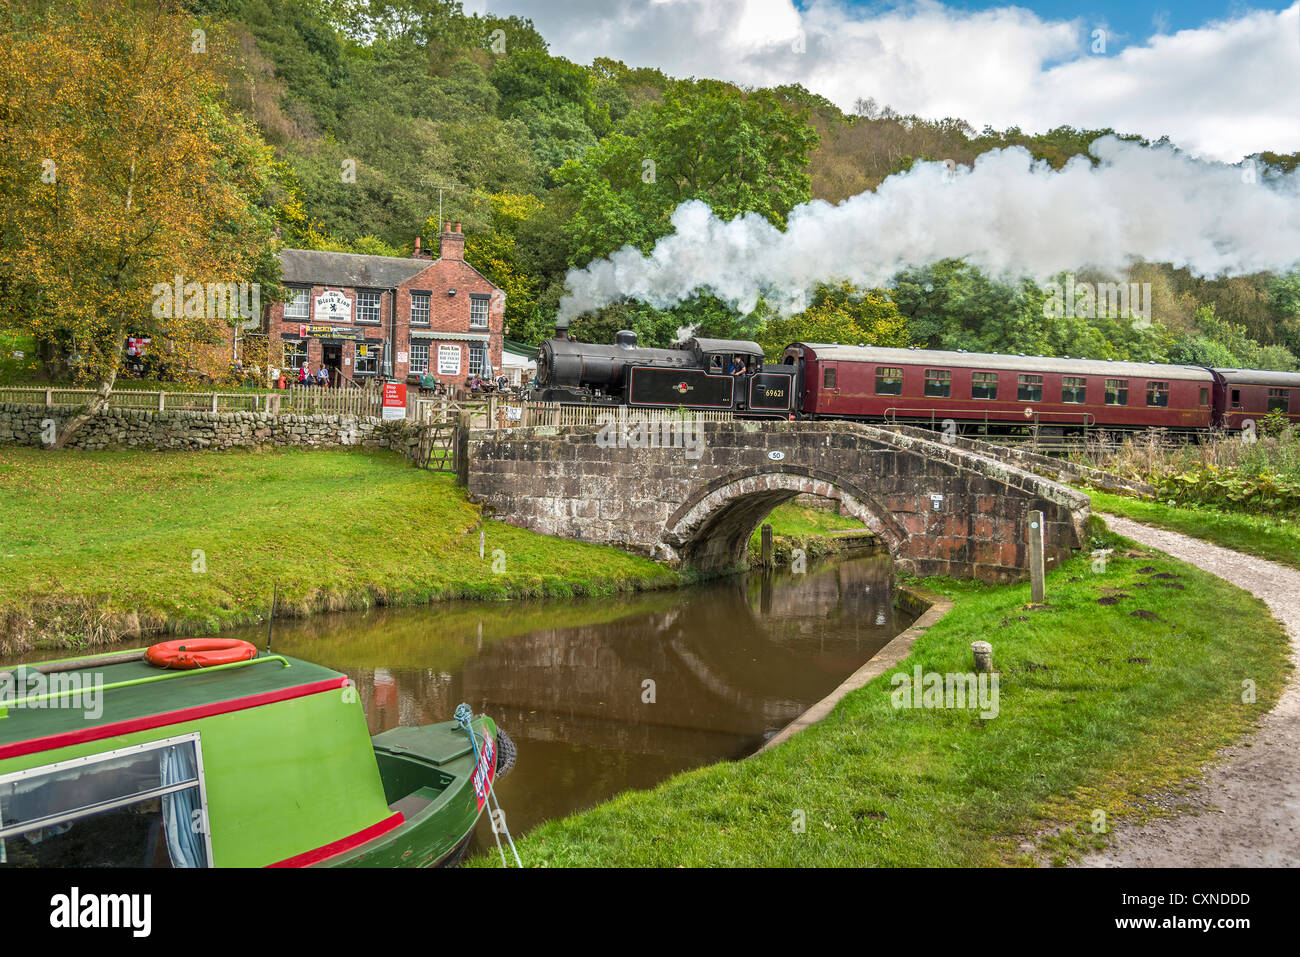 Black Lion pub Consall on the Churnet Valley Railway with a steam train passing by over the Caldon canal in Staffordshire. - Stock Image